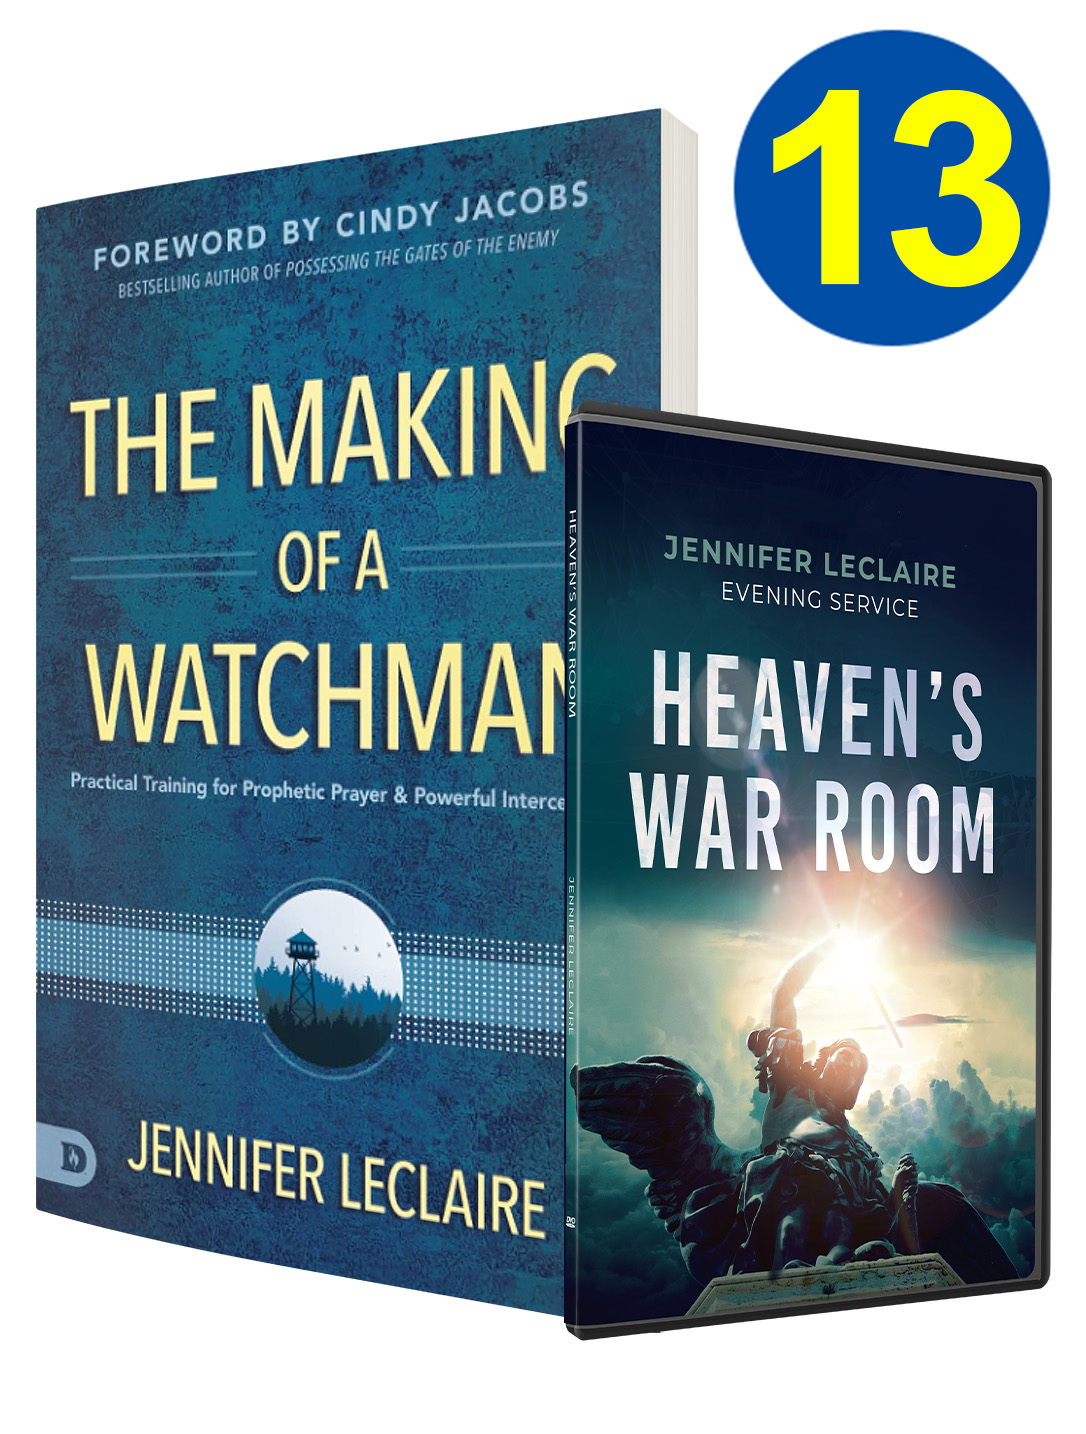 The Making Of A Watchman 13 Book & DVD Offer